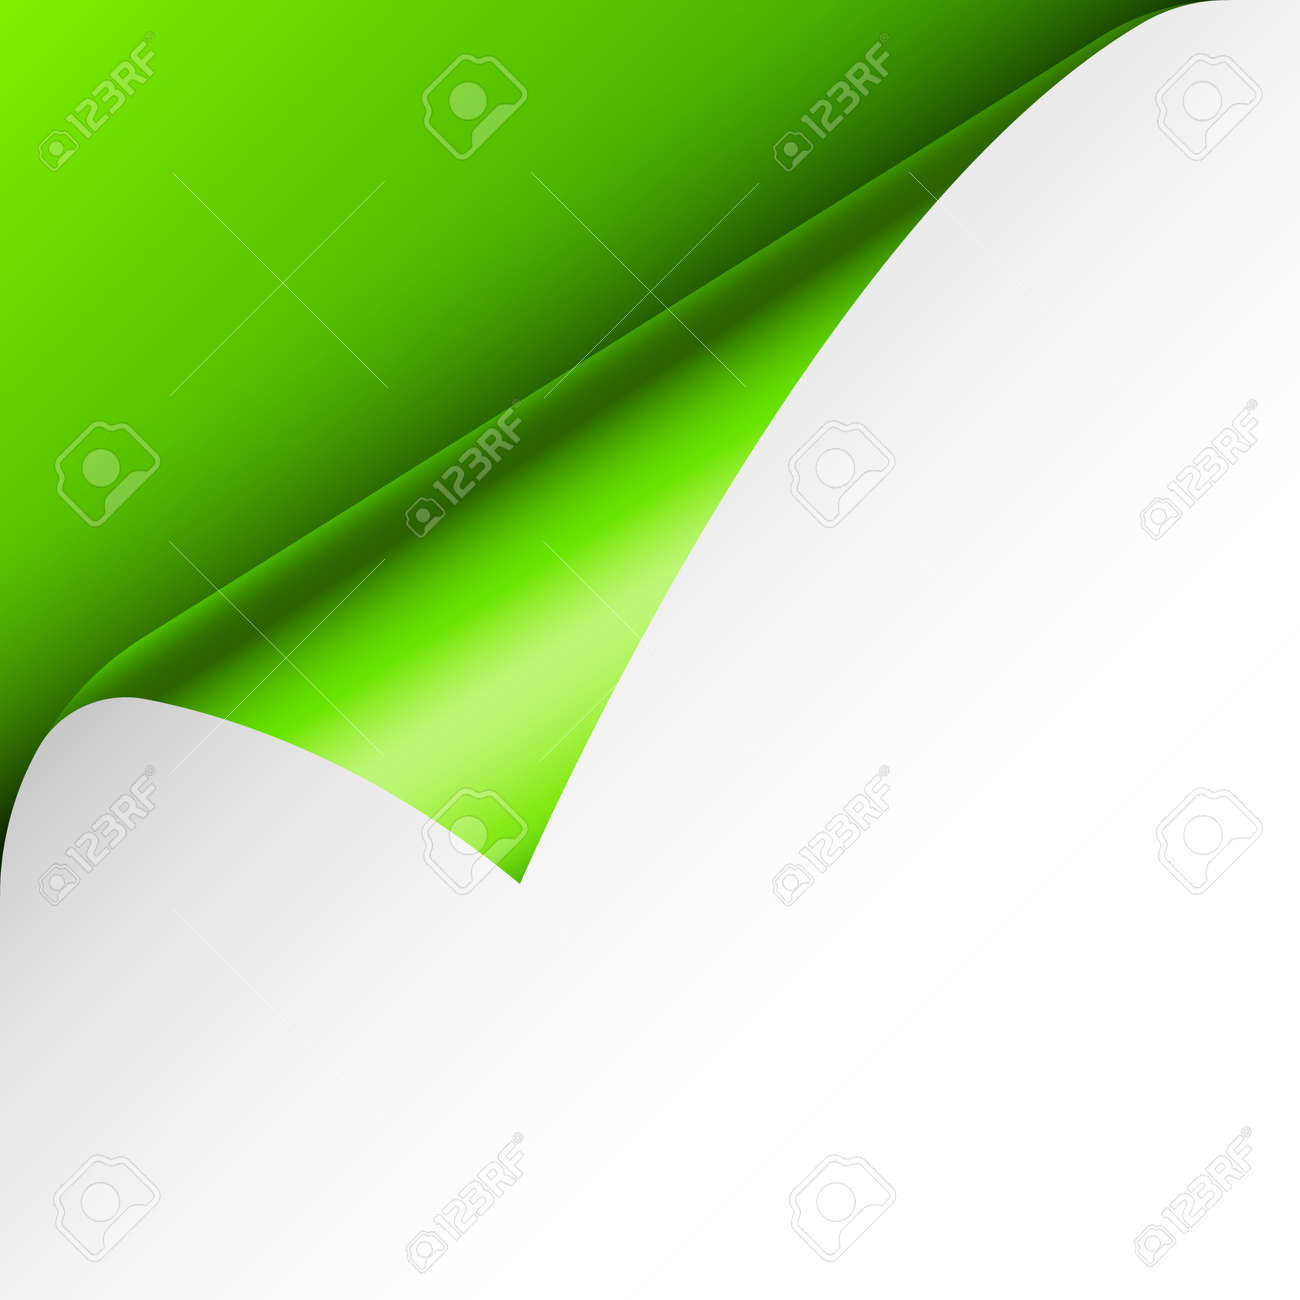 Green paper curl. Curled page corner with shadow. Blank sheet of paper. Colorful shiny foil. Design element for advertising and promotion. Vector illustration. - 166995497